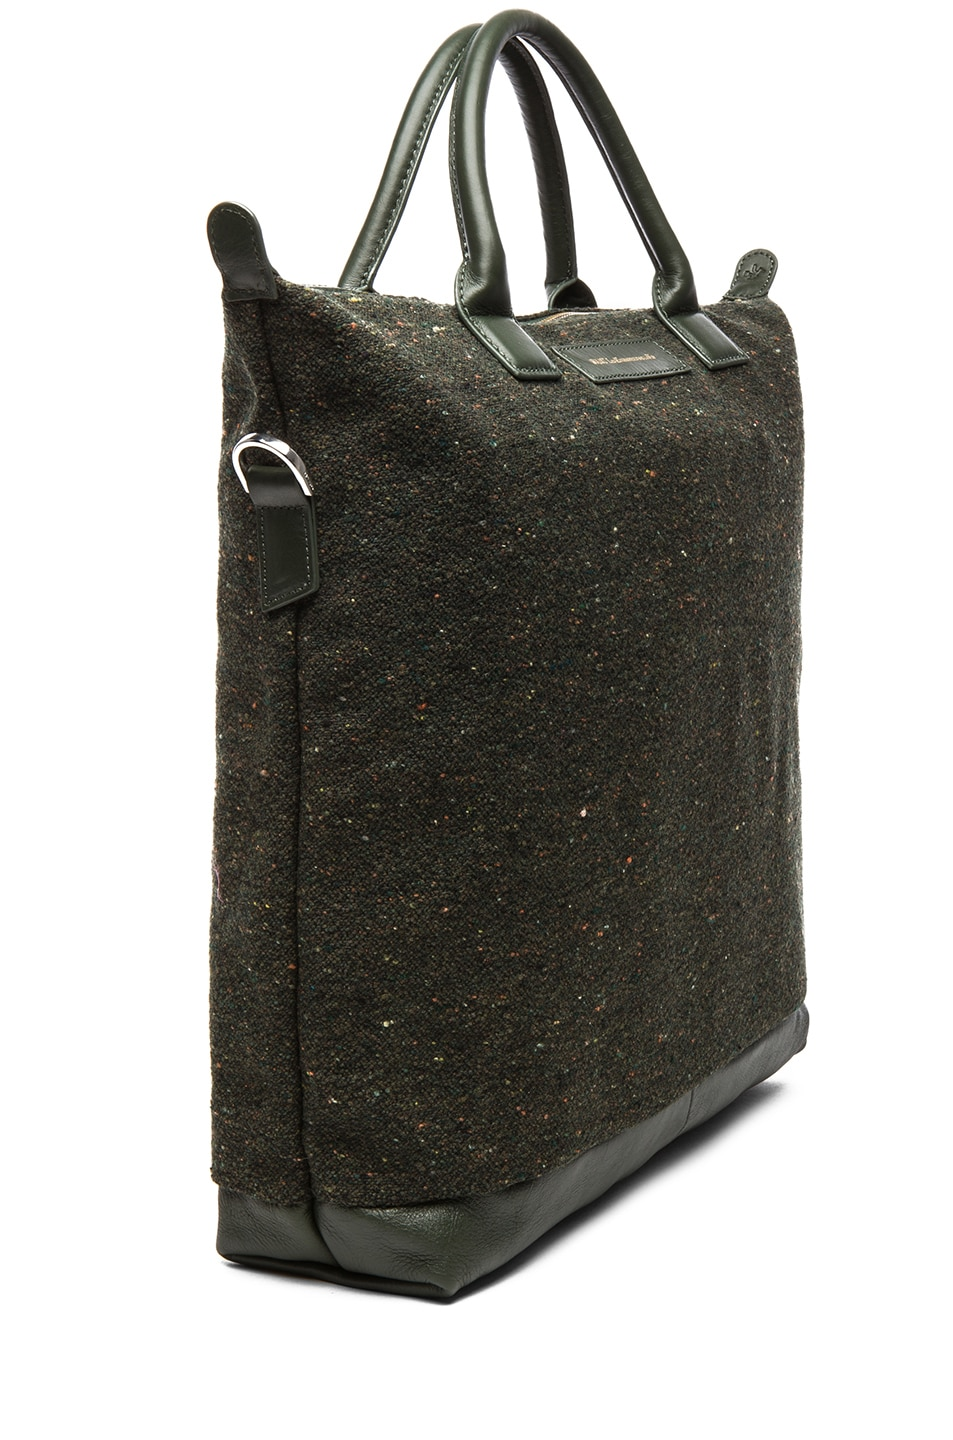 Image 3 of Want Les Essentiels De La Vie O'Hare Shopper Tote in Spruce Fire & Moss